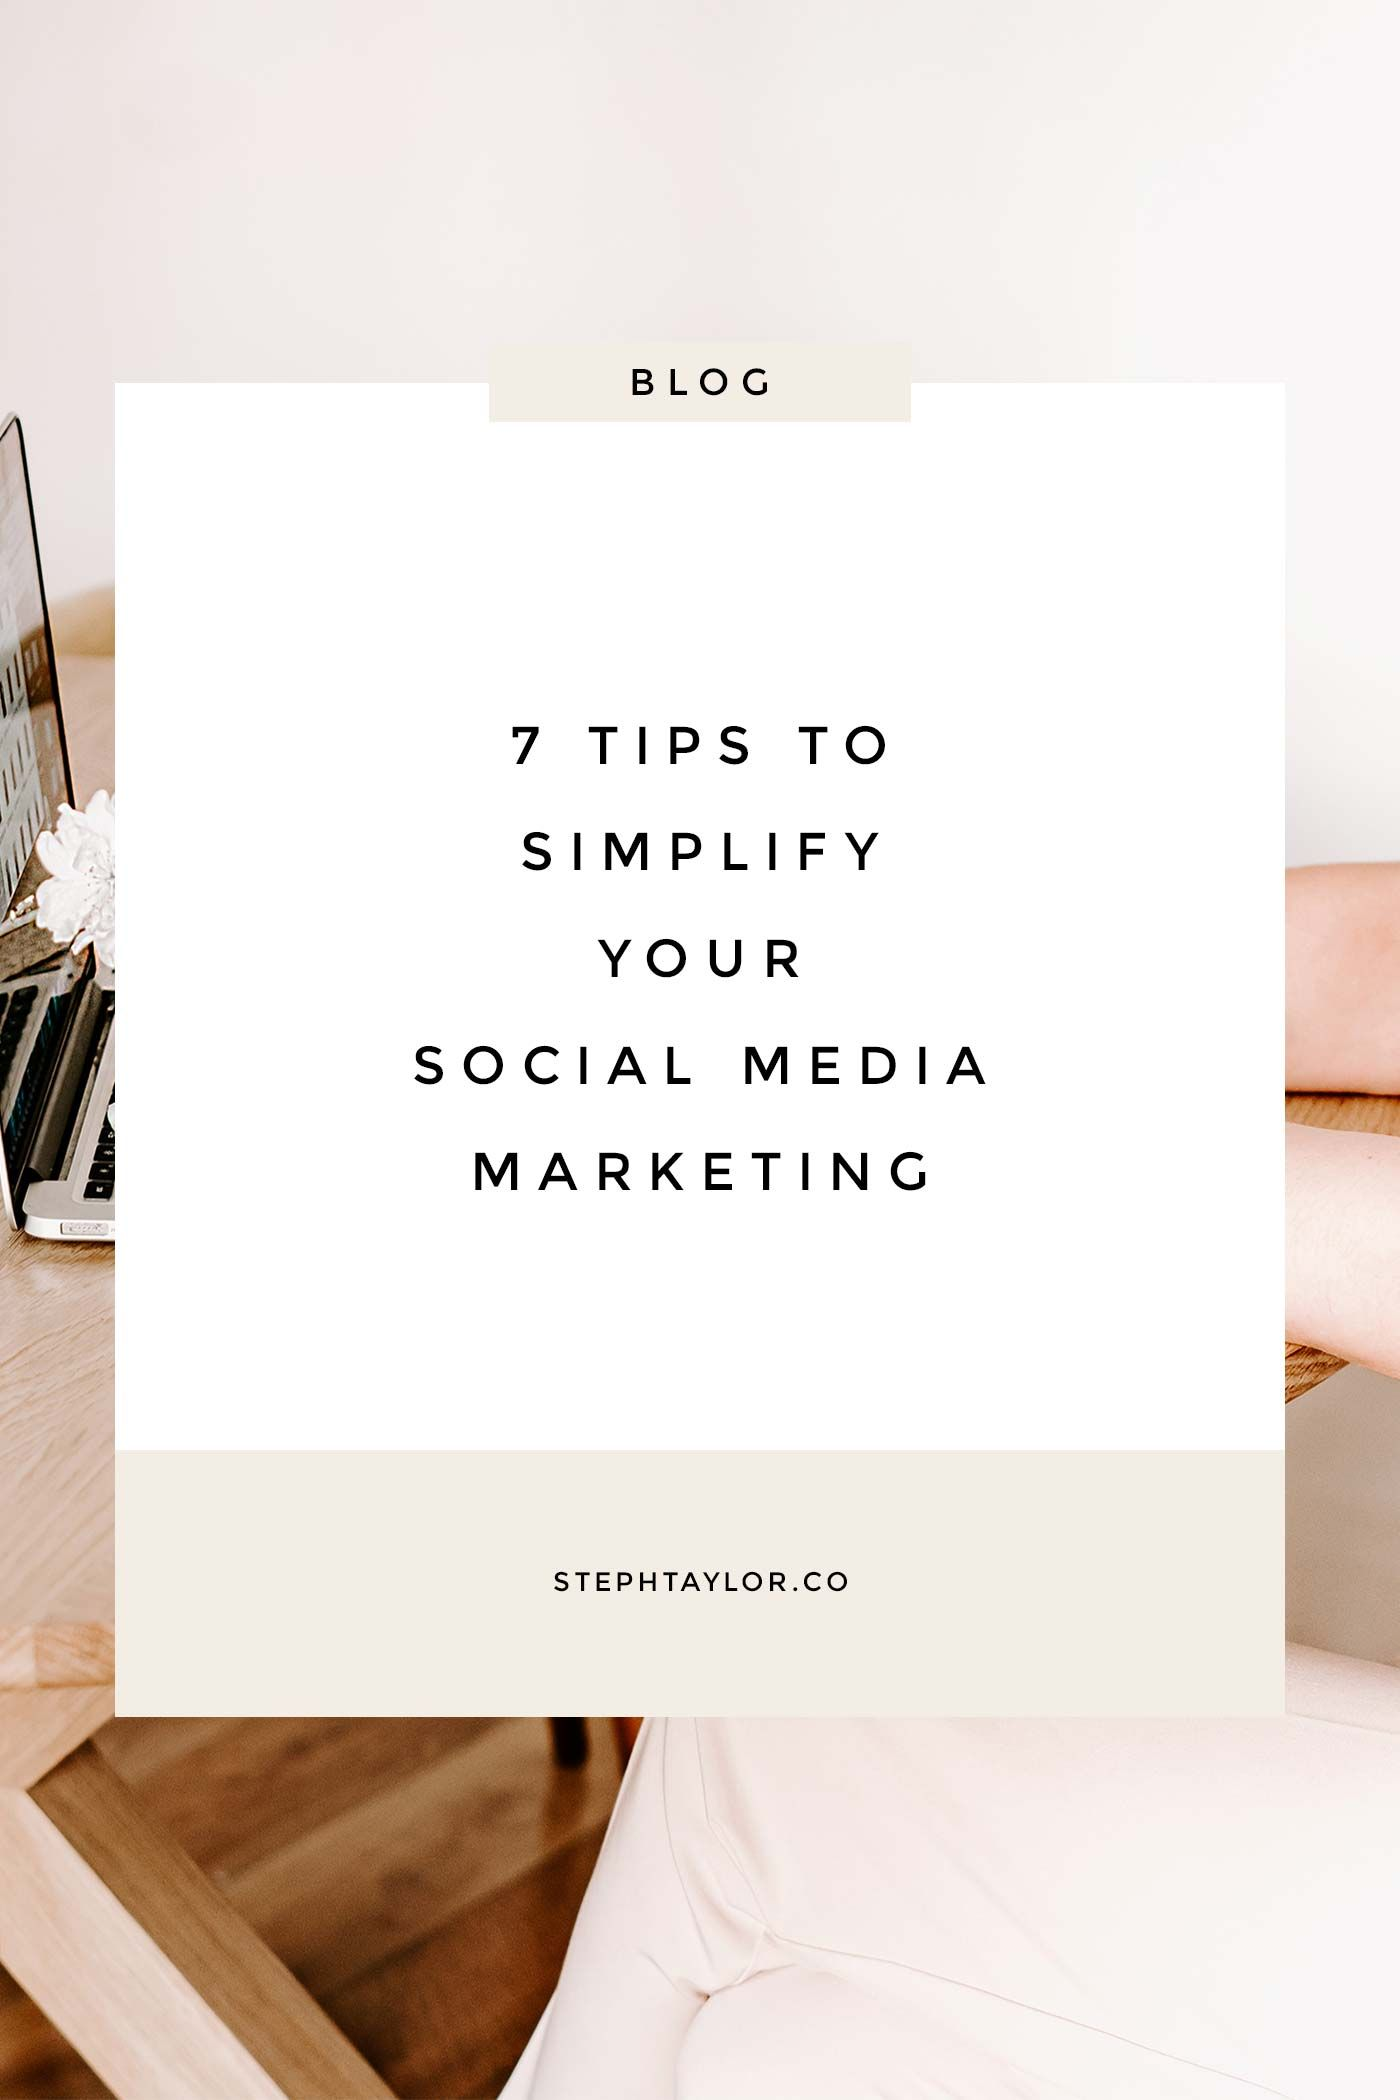 Social media marketing doesn't need to be as complicated as you think it is. So often, we overcompl